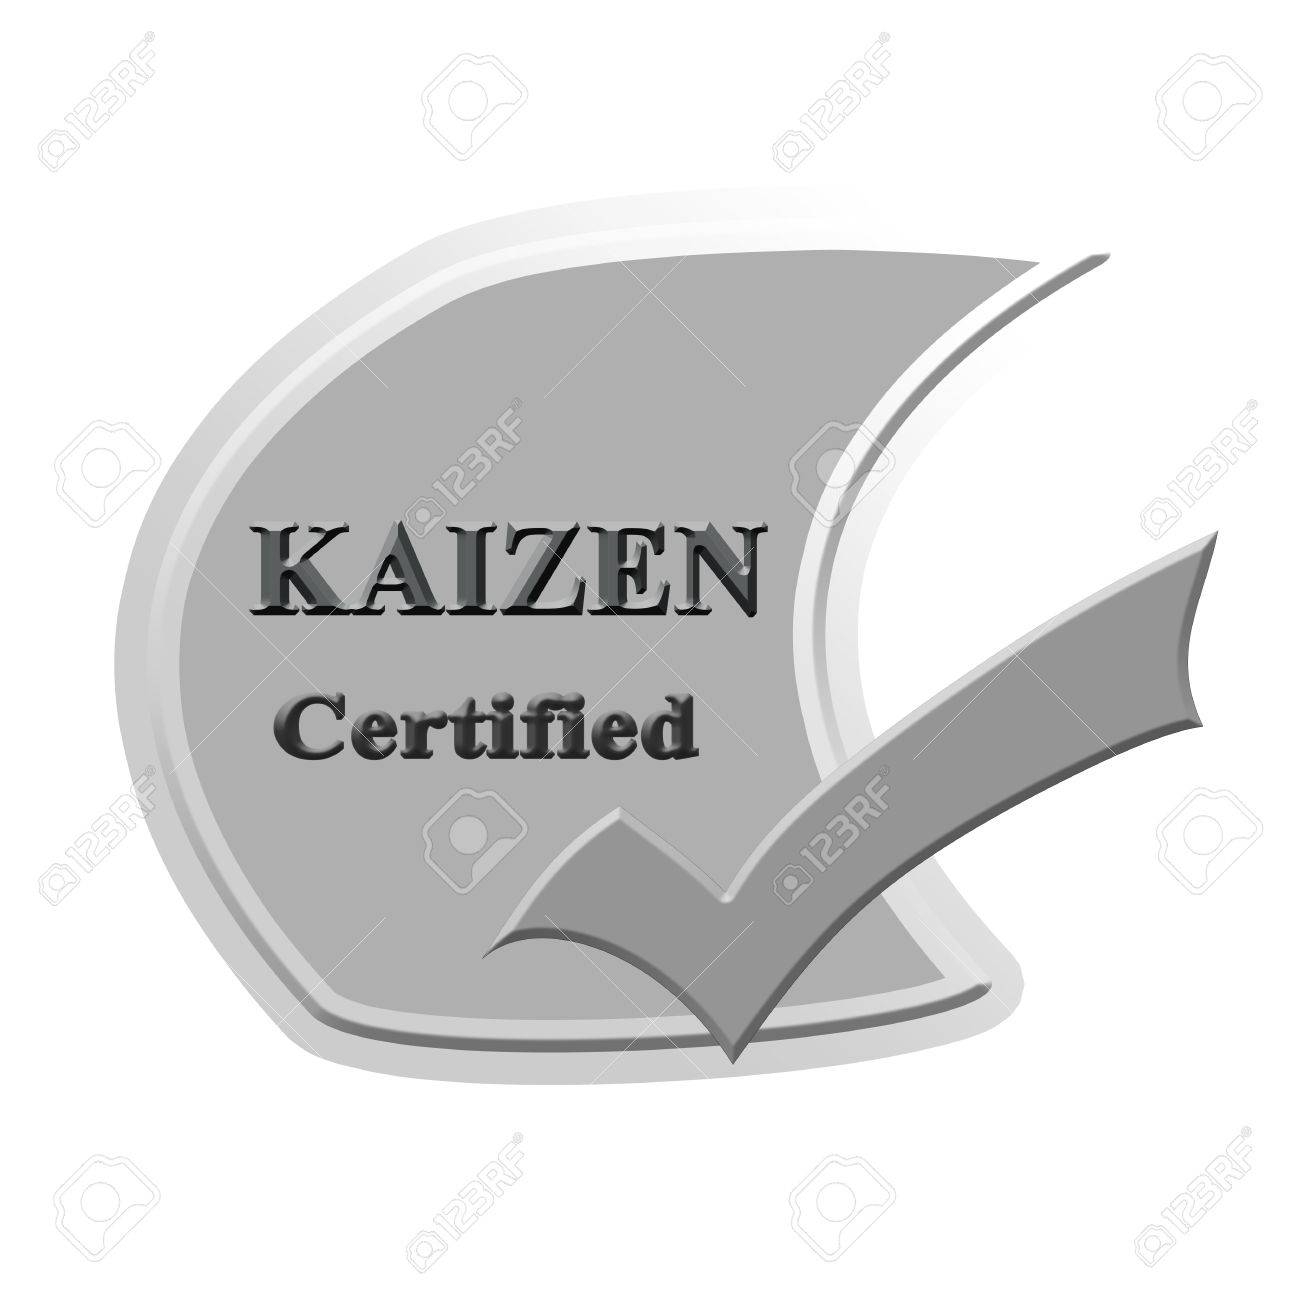 Kaizen certified icon or symbol image concept design for business kaizen certified icon or symbol image concept design for business and use in company system 1betcityfo Gallery